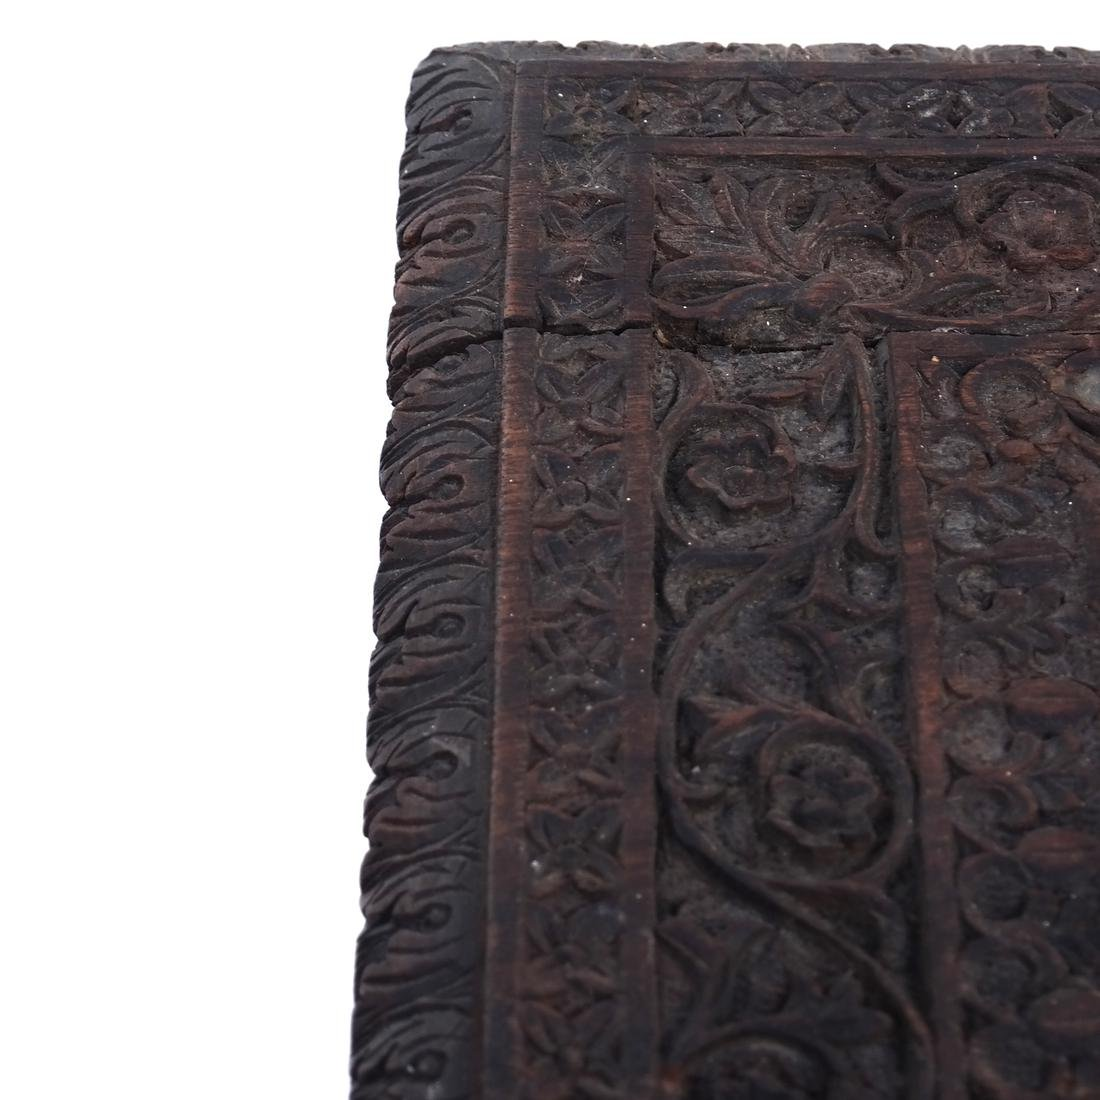 Victorian Carved Wood Table - 8